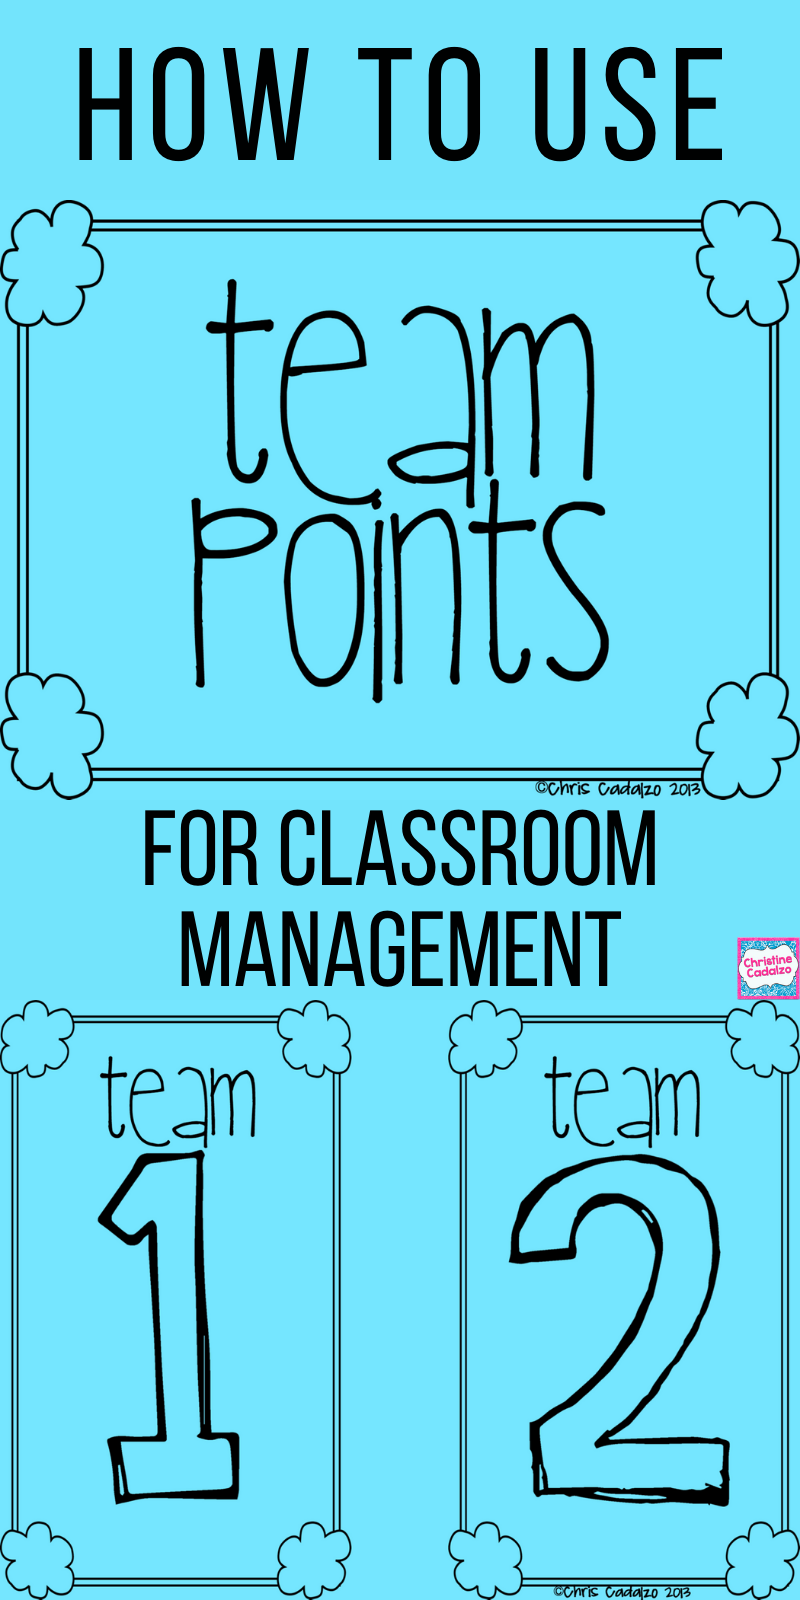 How to Use Team Points for Classroom Management (and Why it Works!)